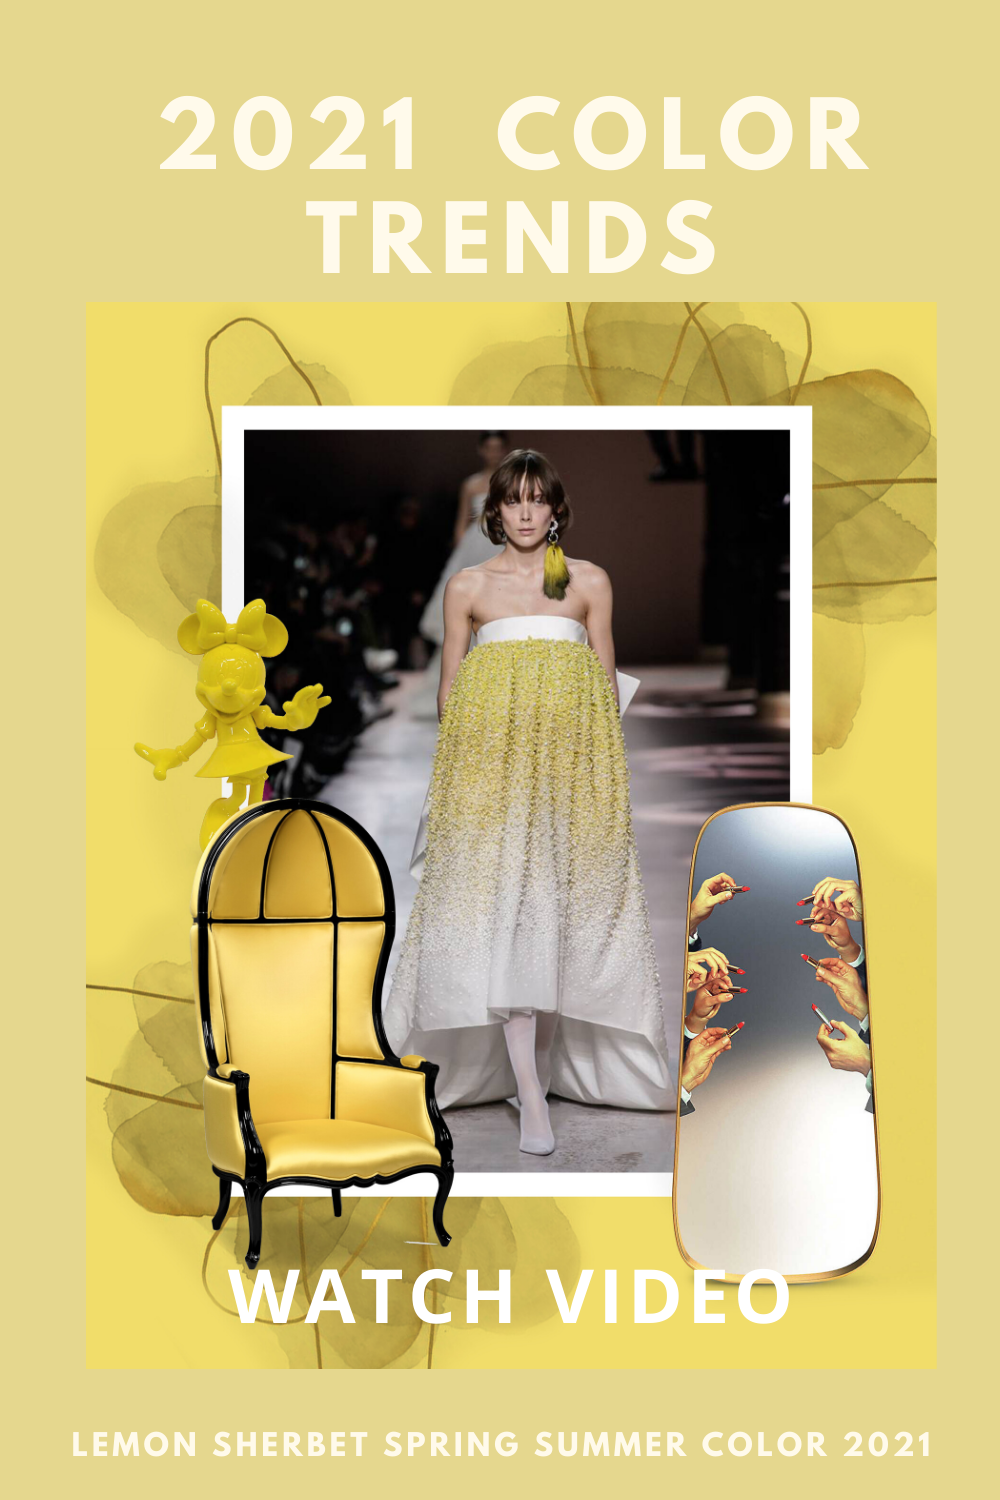 Lemon Sherbet Spring Summer Color Trend 2021 In 2020 Color Trends Color Trends Fashion Summer Color Trends